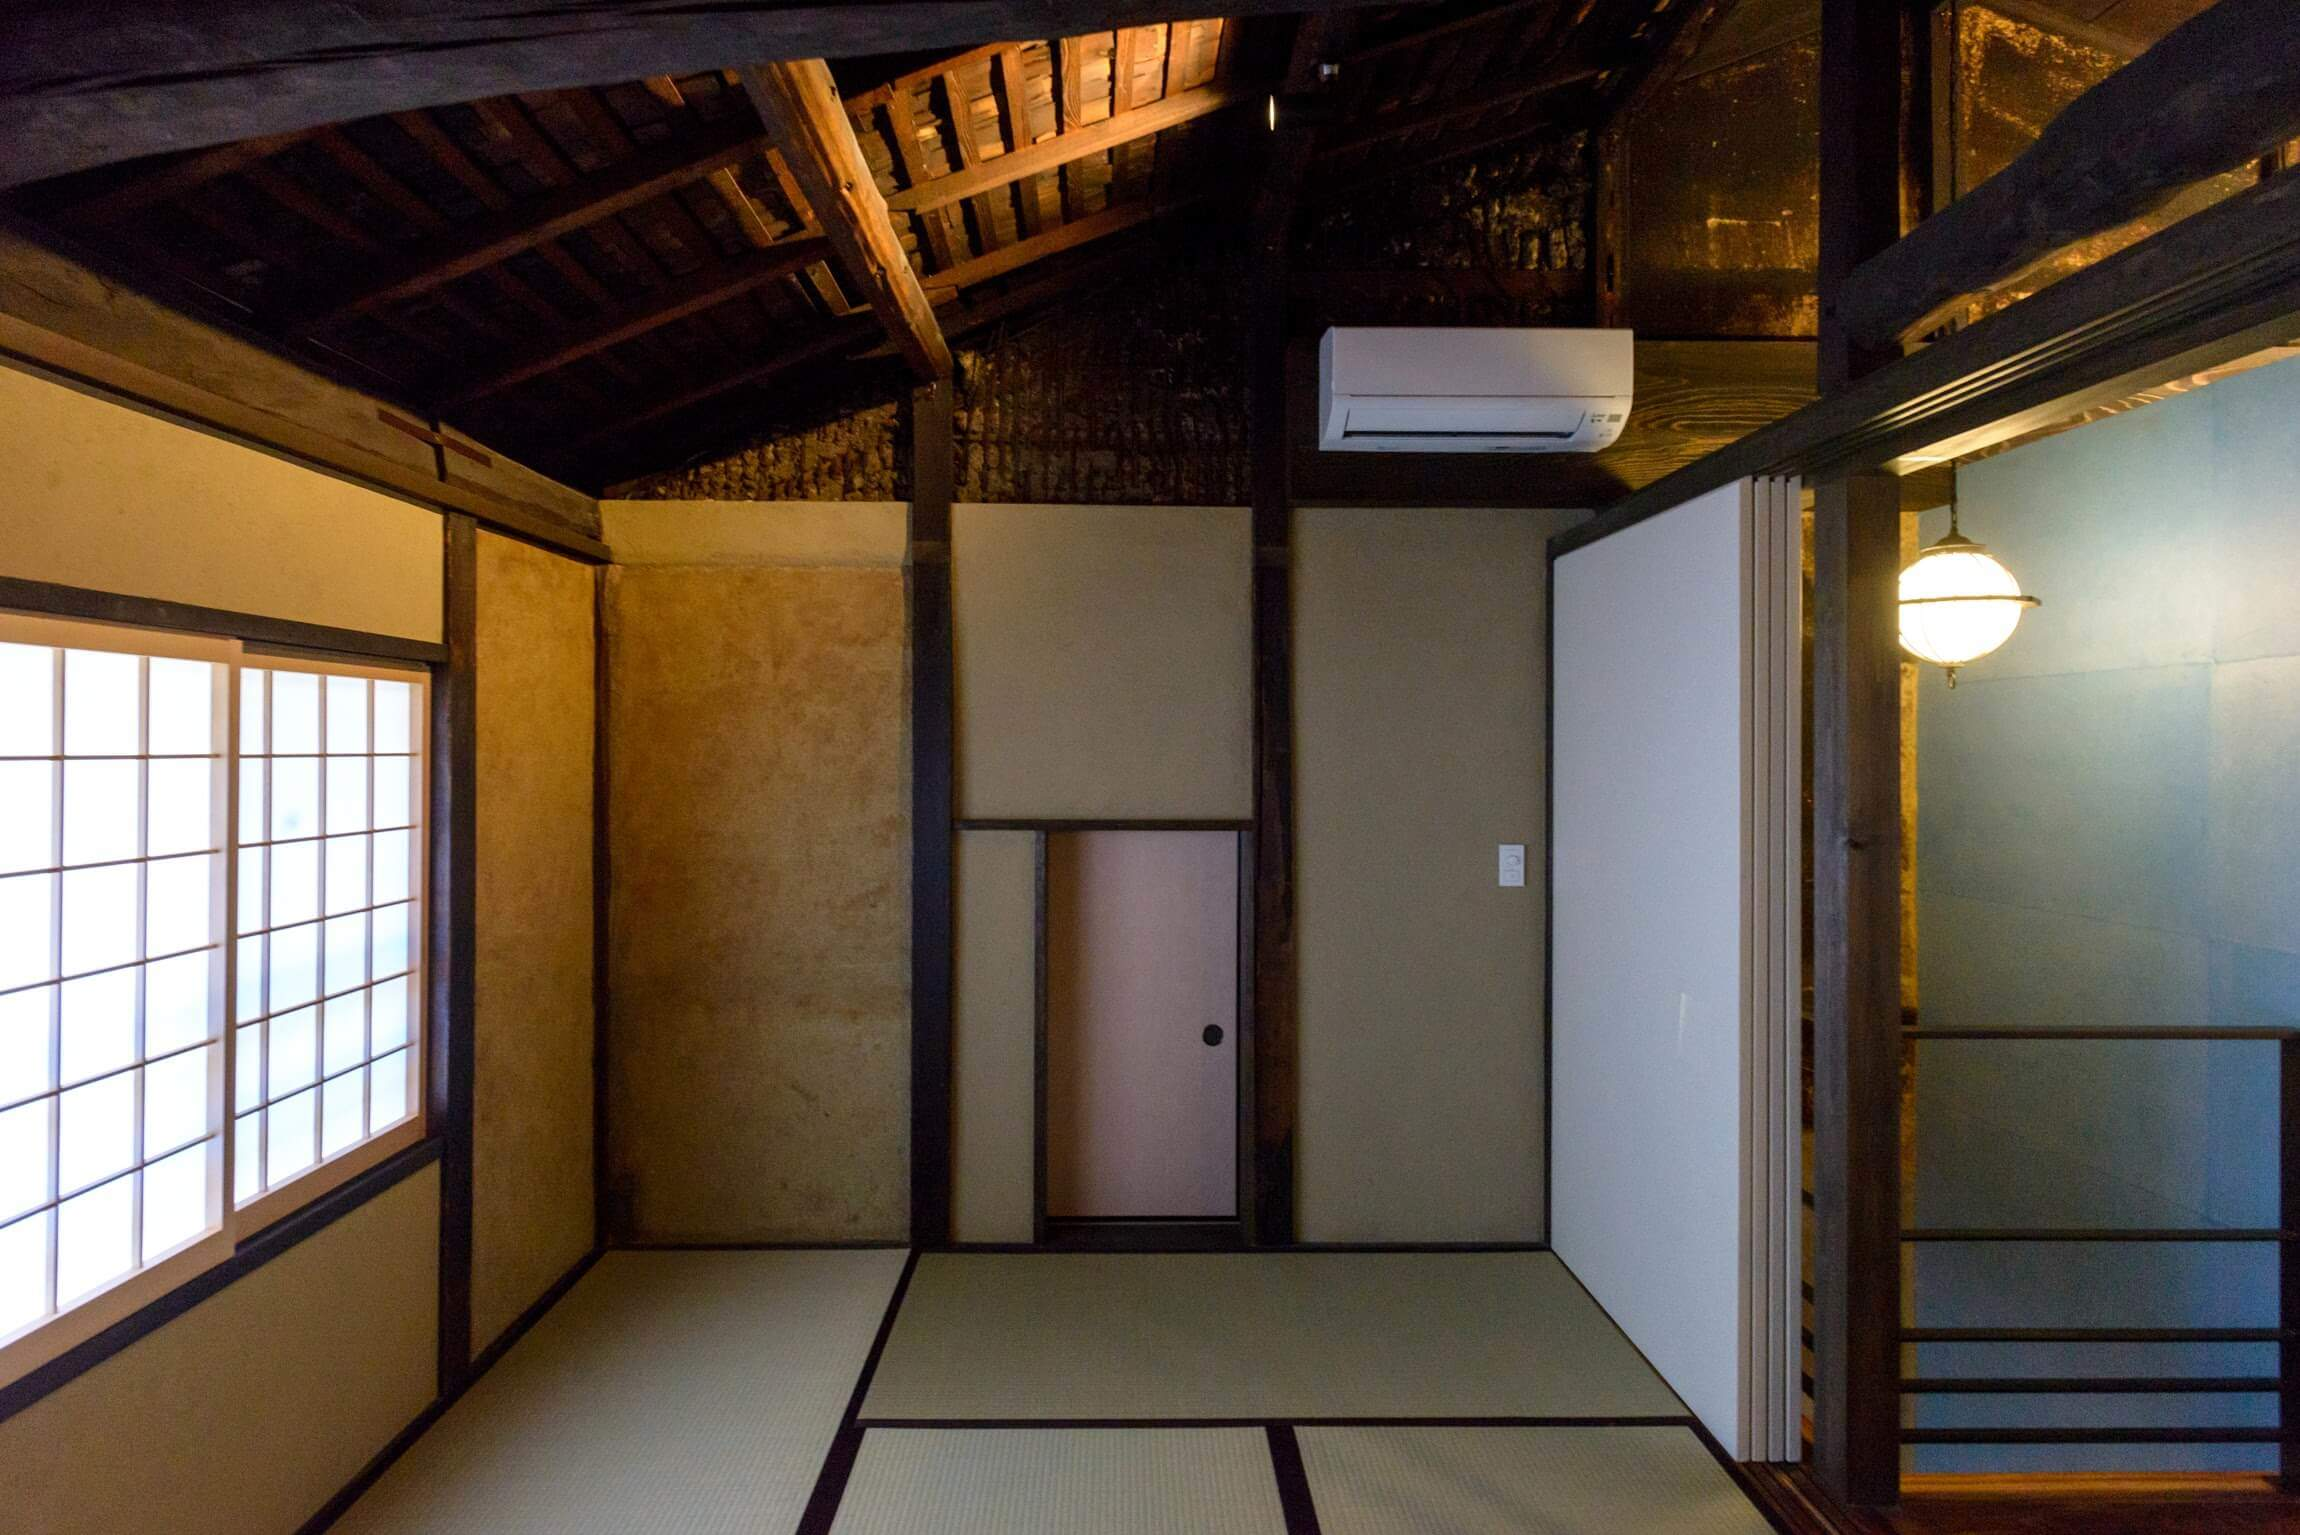 Asagi-an - MACHIYA RESIDENCE INN | Holiday Rental Houses in KYOTO, Japan